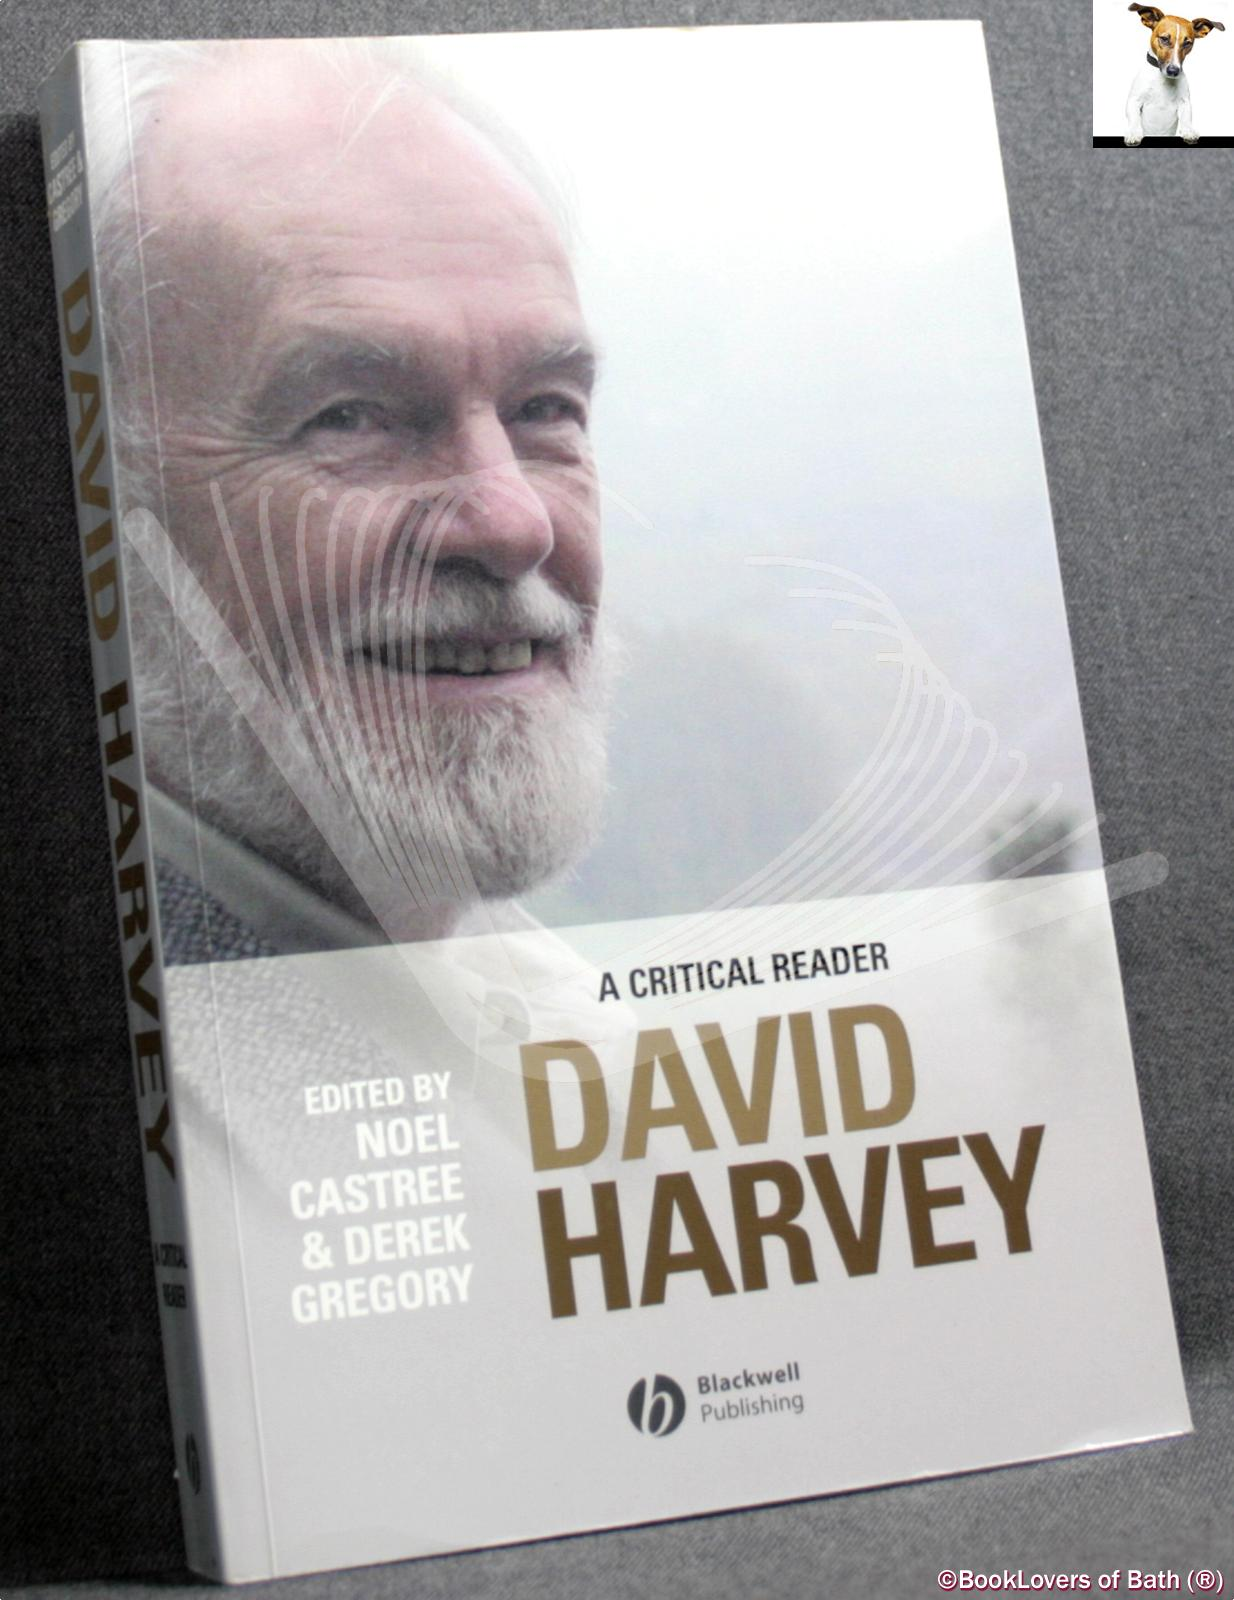 David Harvey: A Critical Reader - Edited by Noel Castree & Derek Gregory